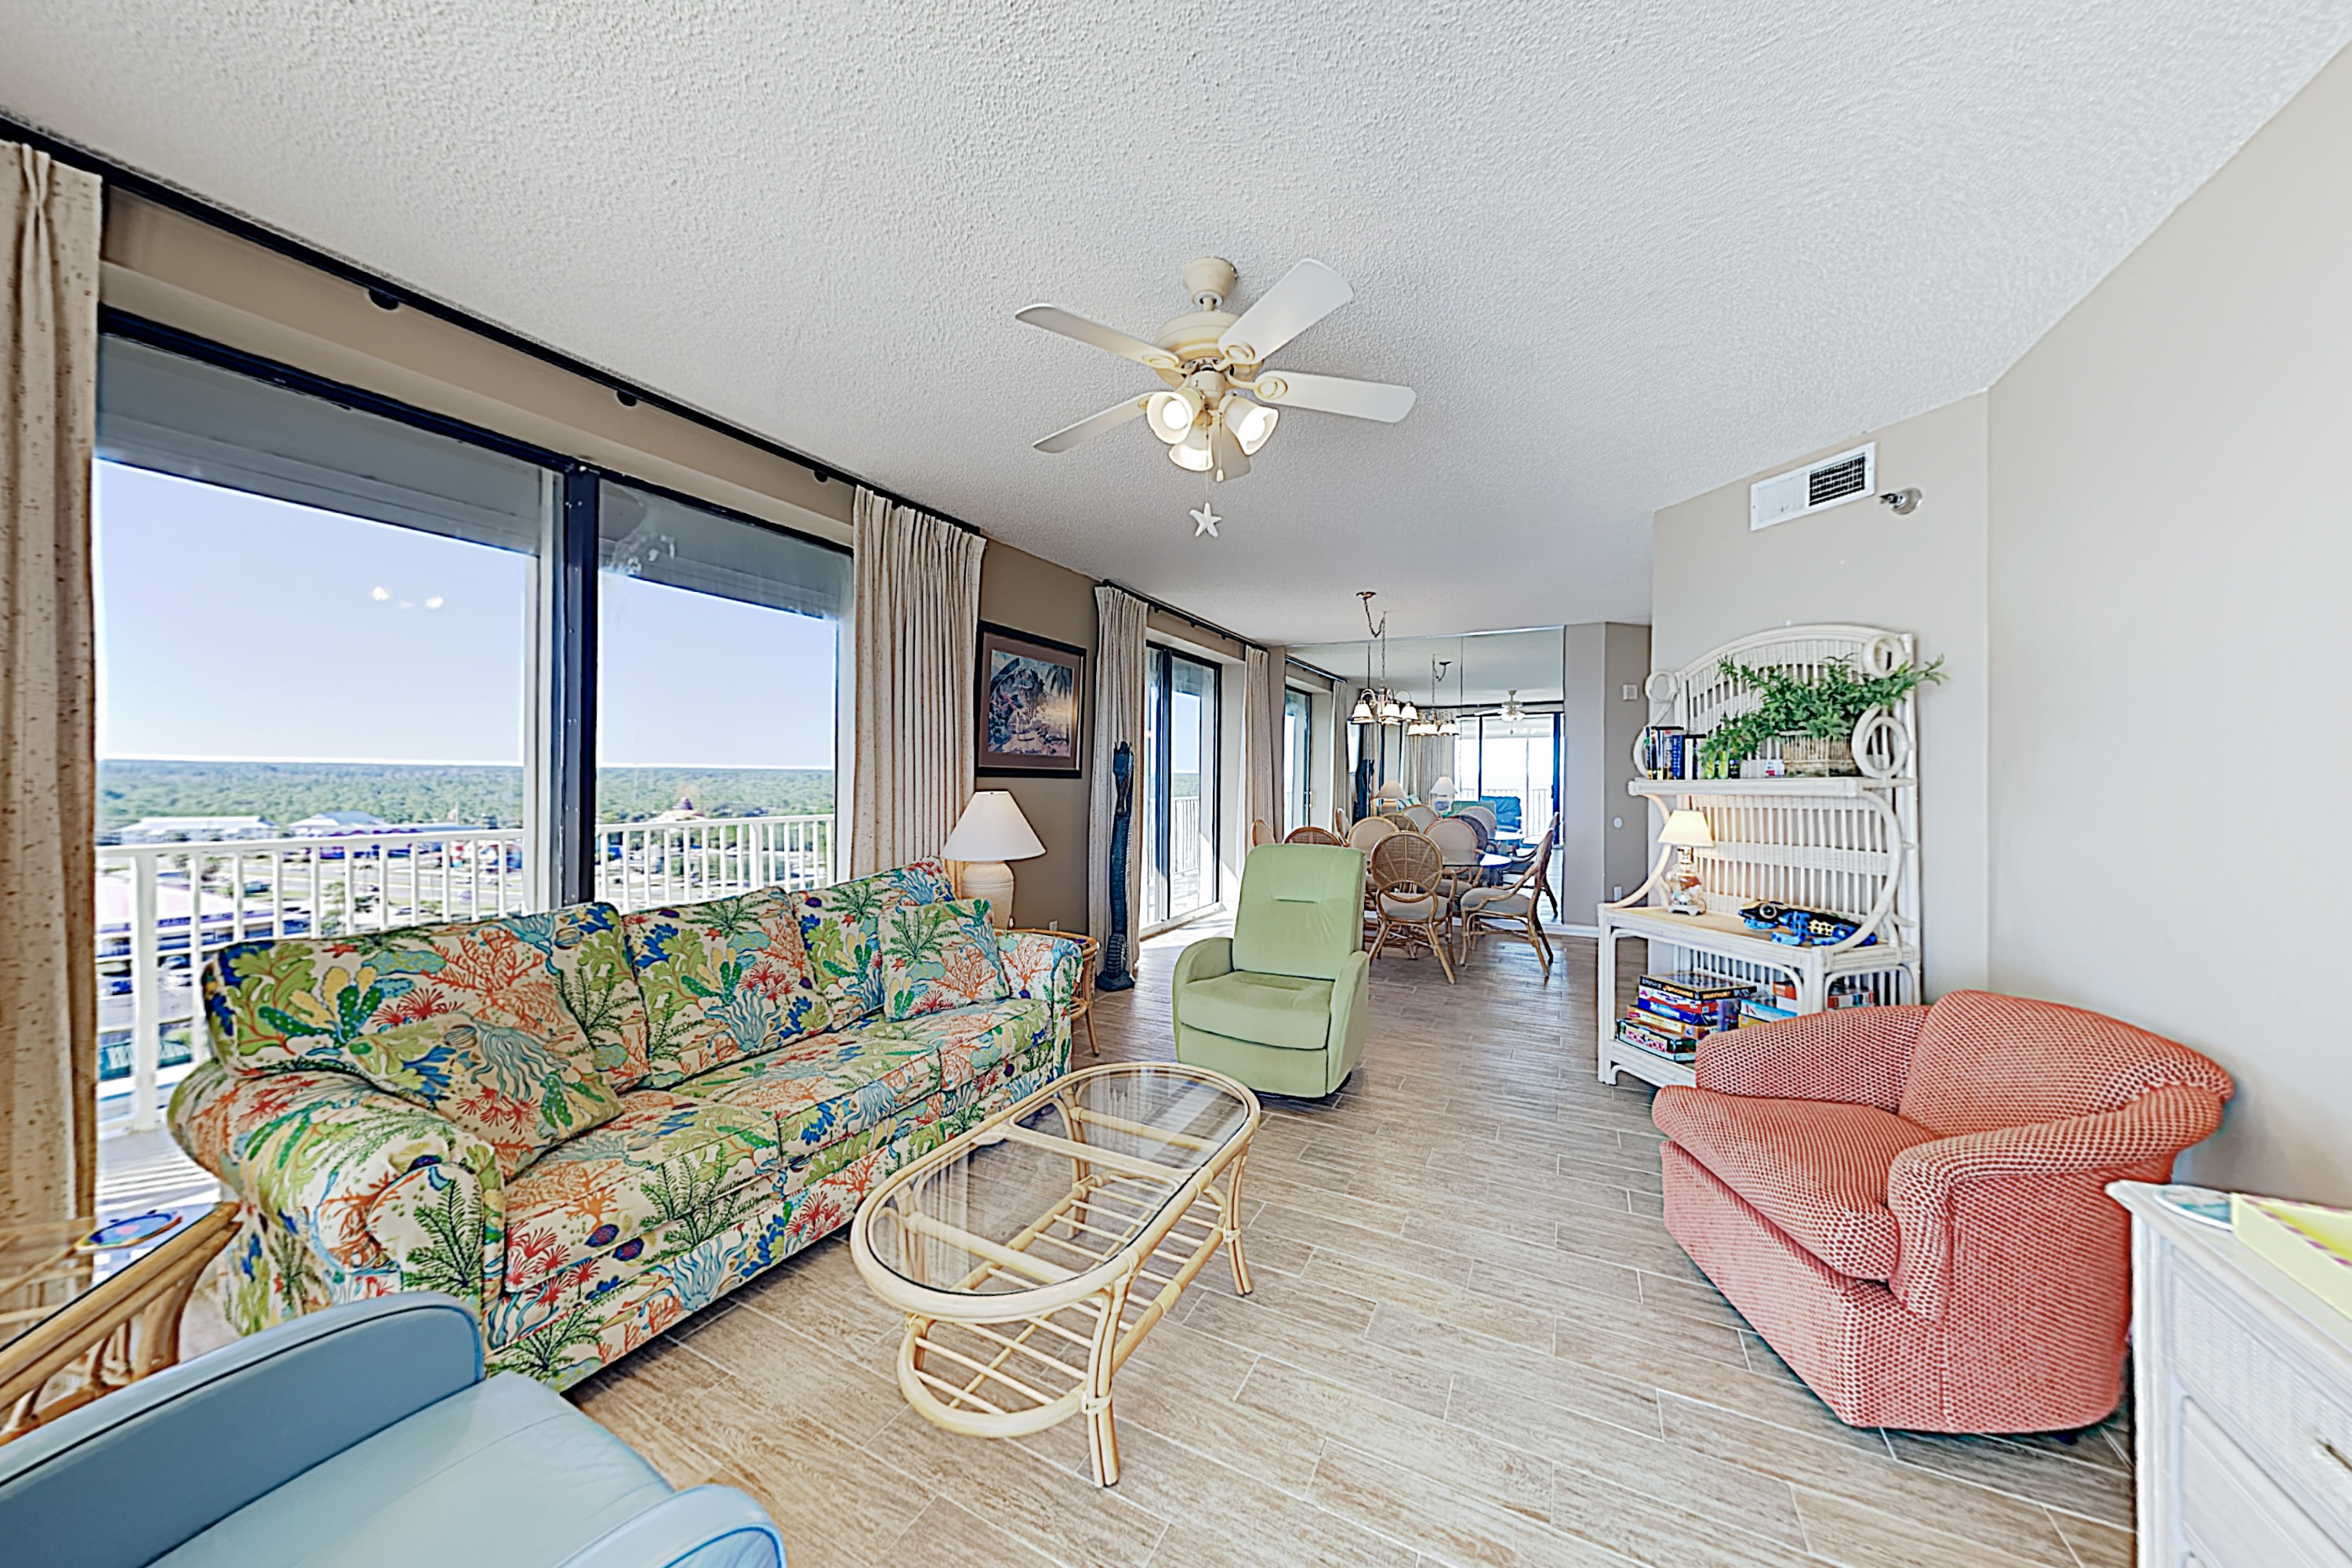 Orange Beach AL Vacation Rental Welcome to the